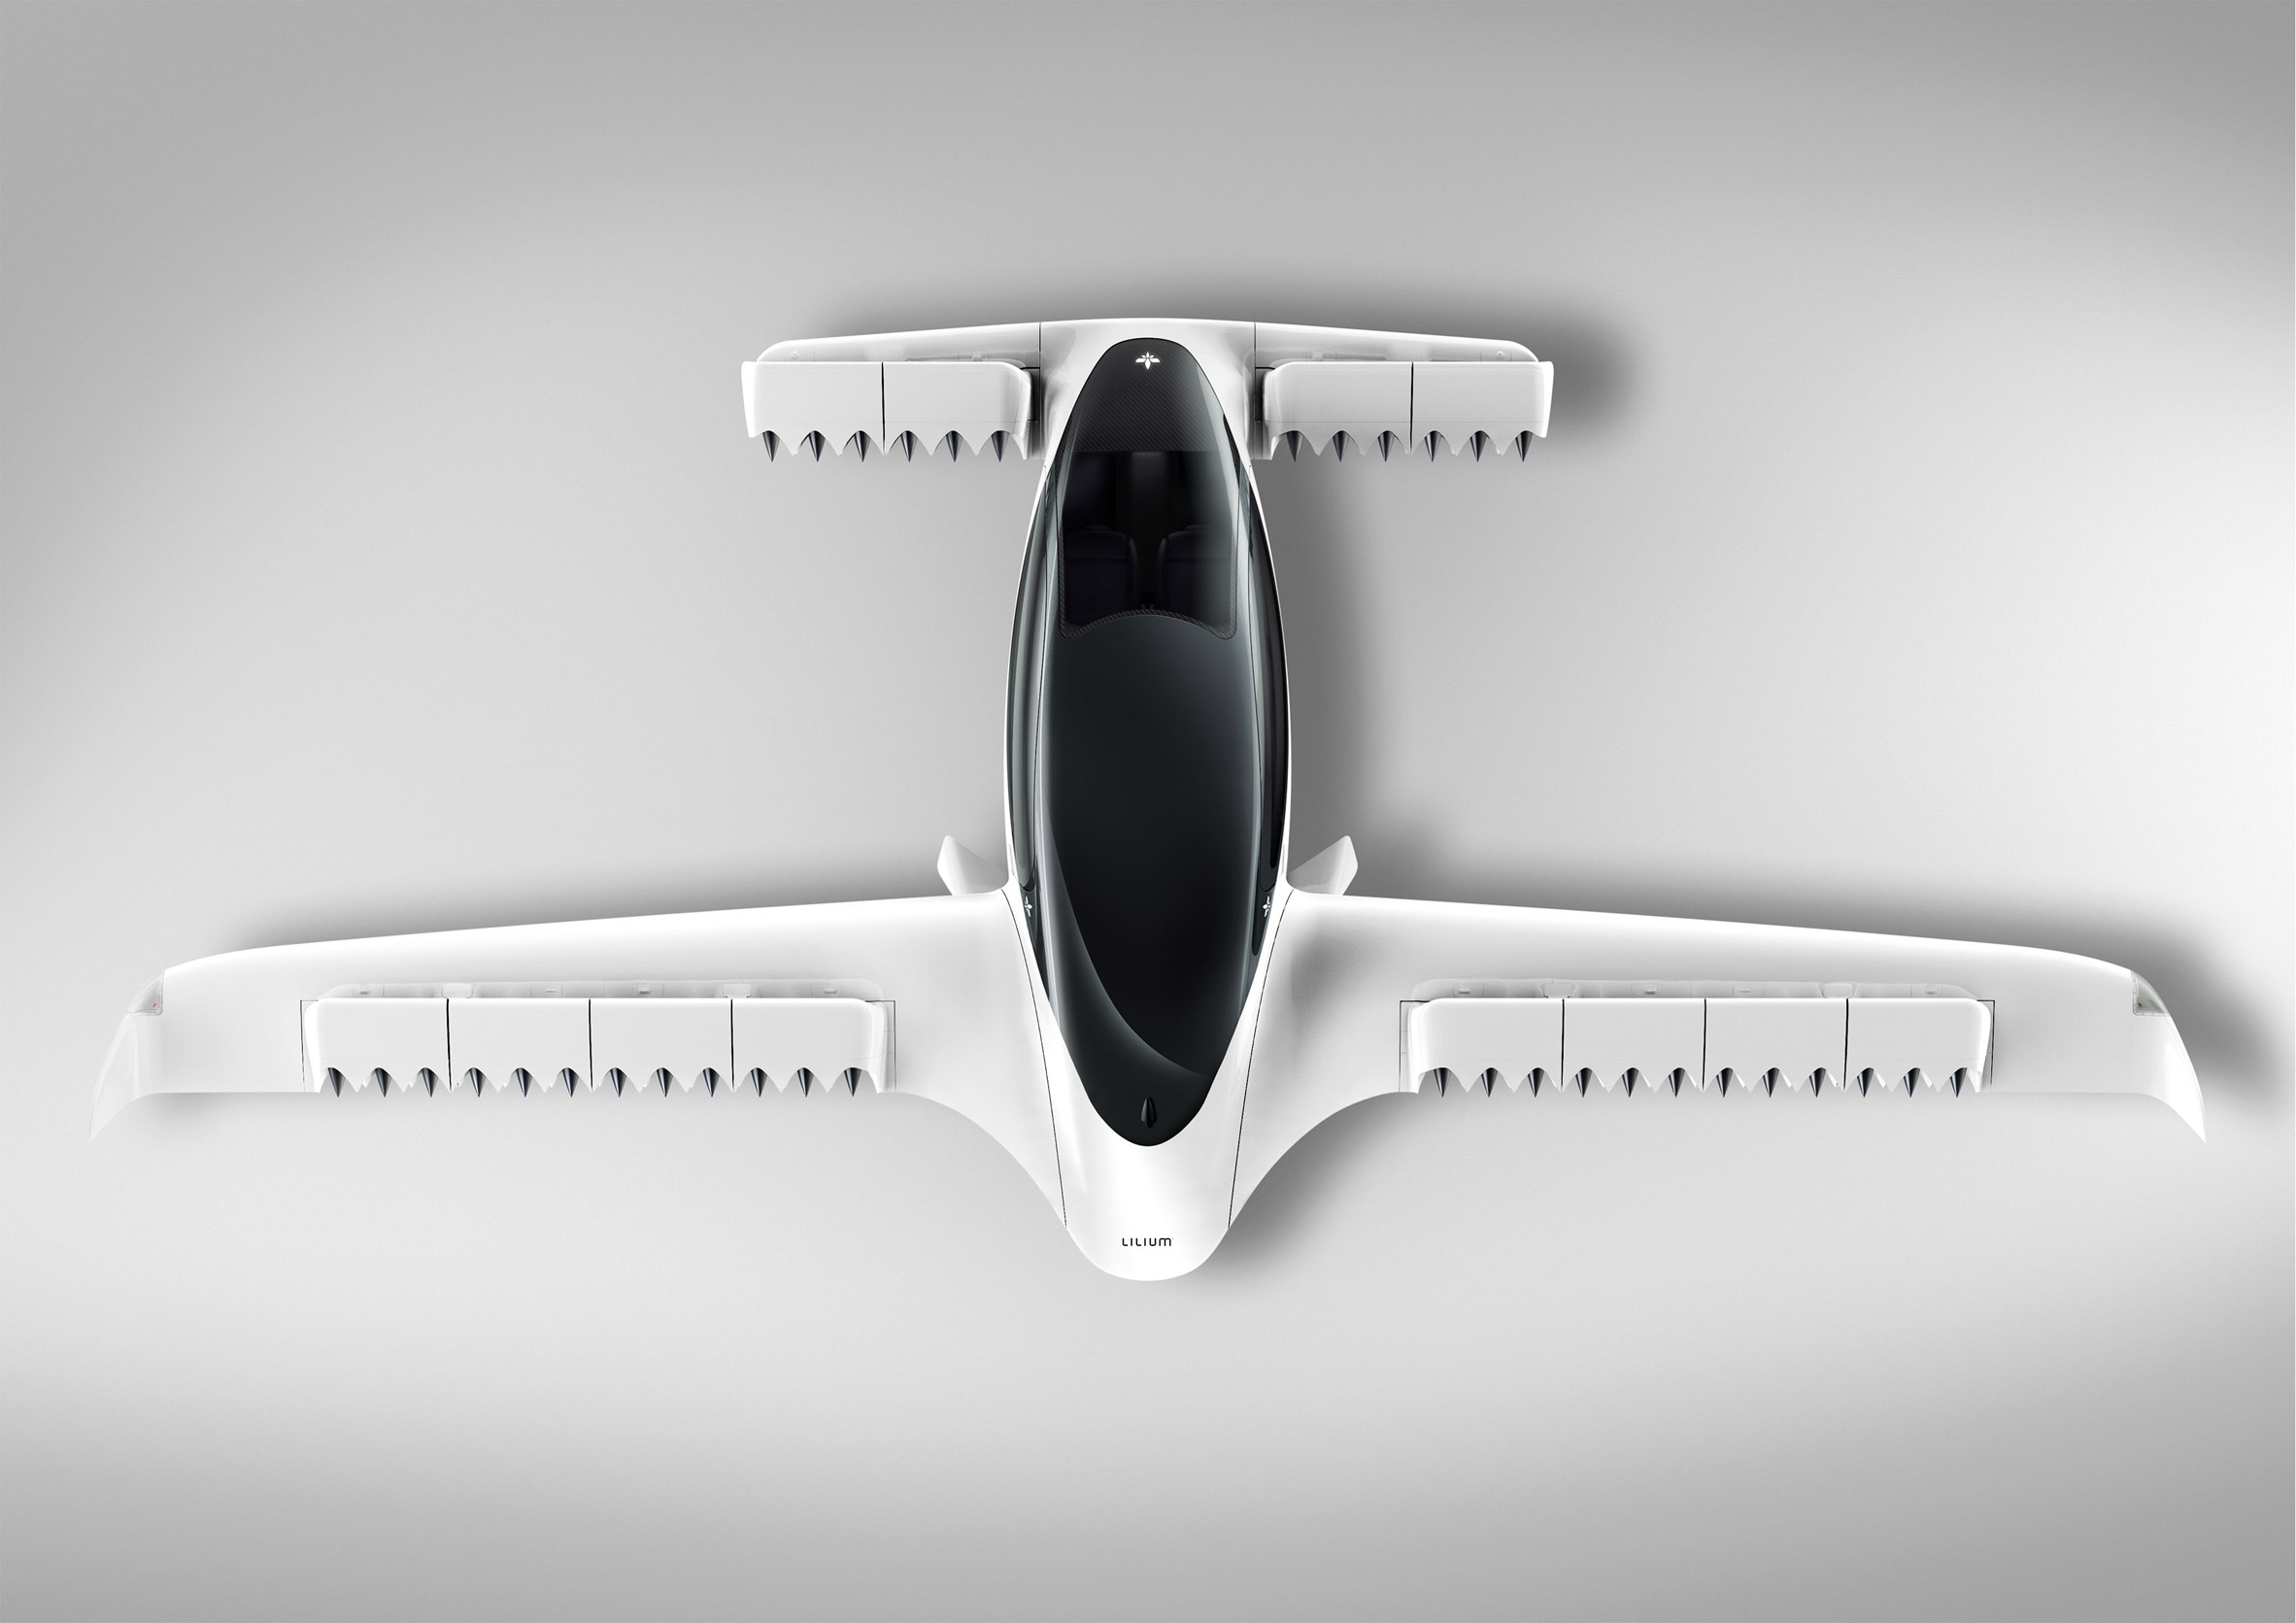 Lilium Jet all-electric air taxi prototype